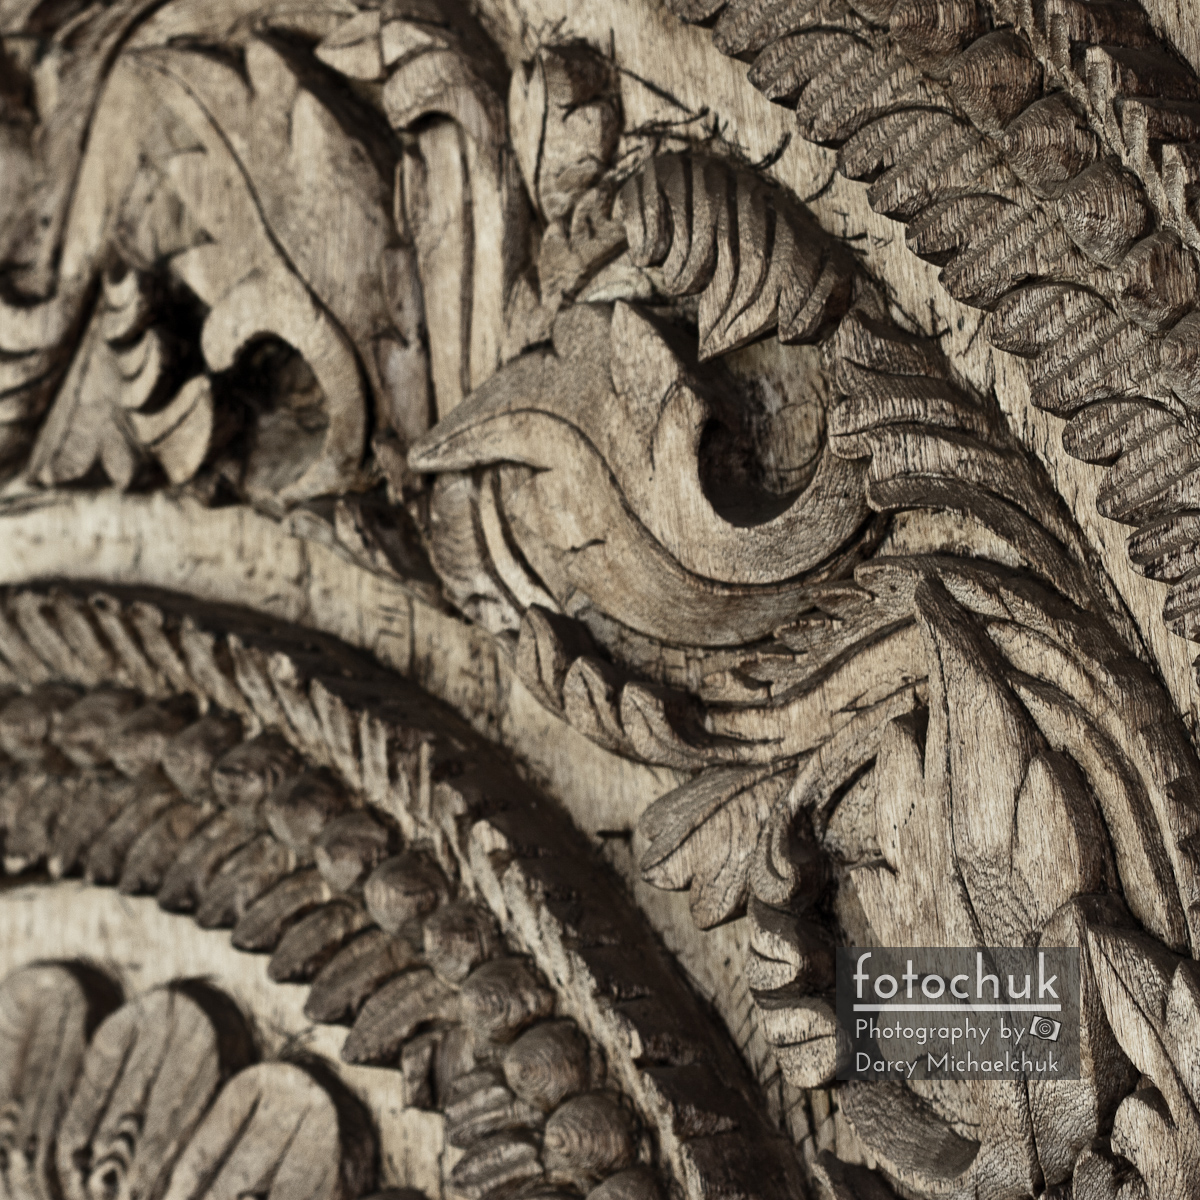 Patterns Carved in Wood up Close